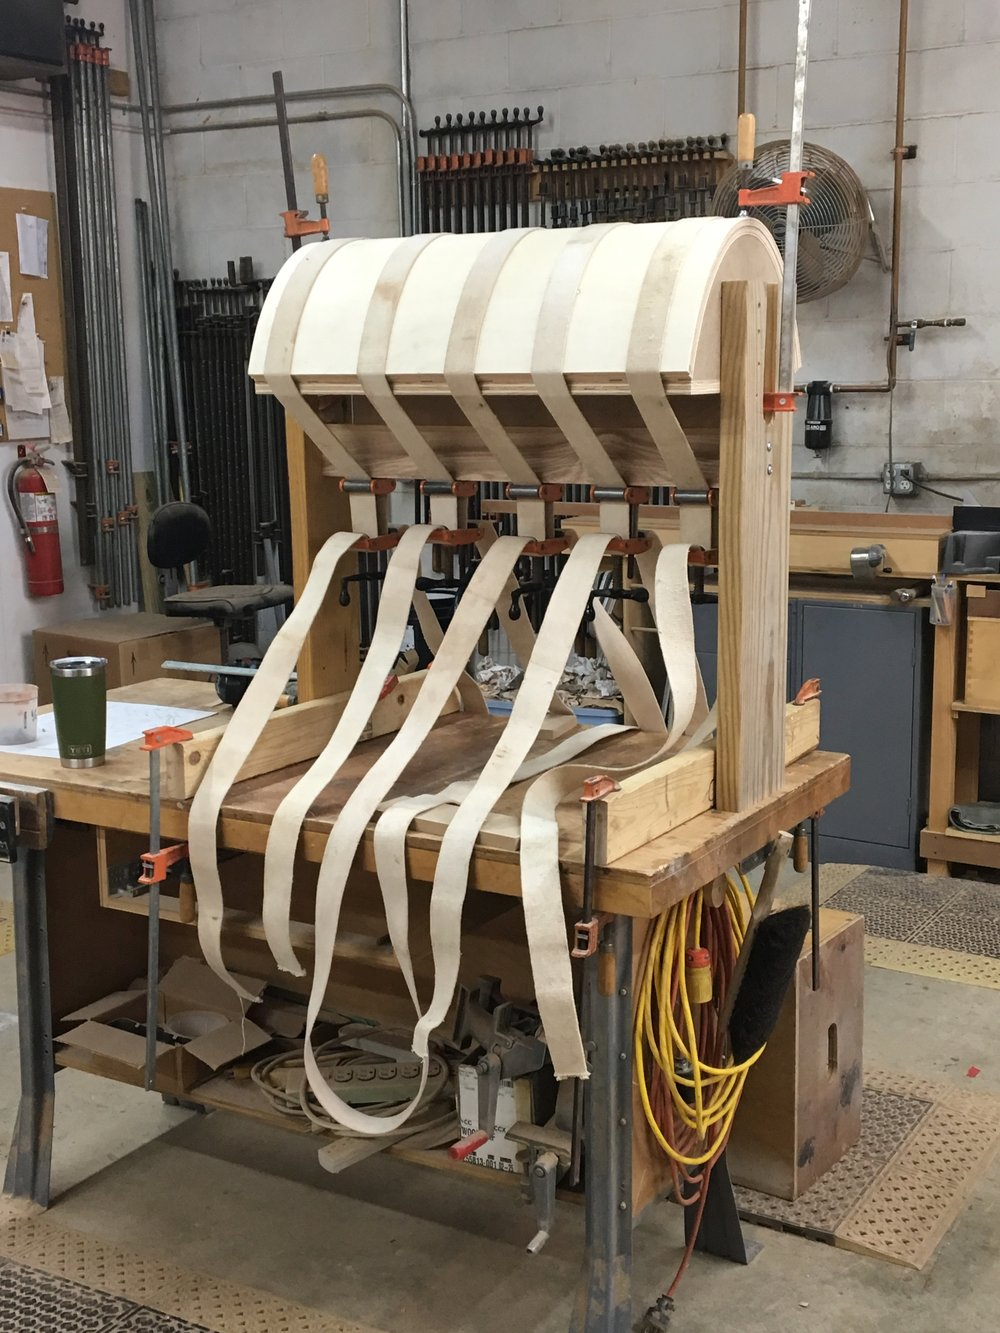 This is a photo of the form with the bending grade plywood being pressed against it with canvas straps.